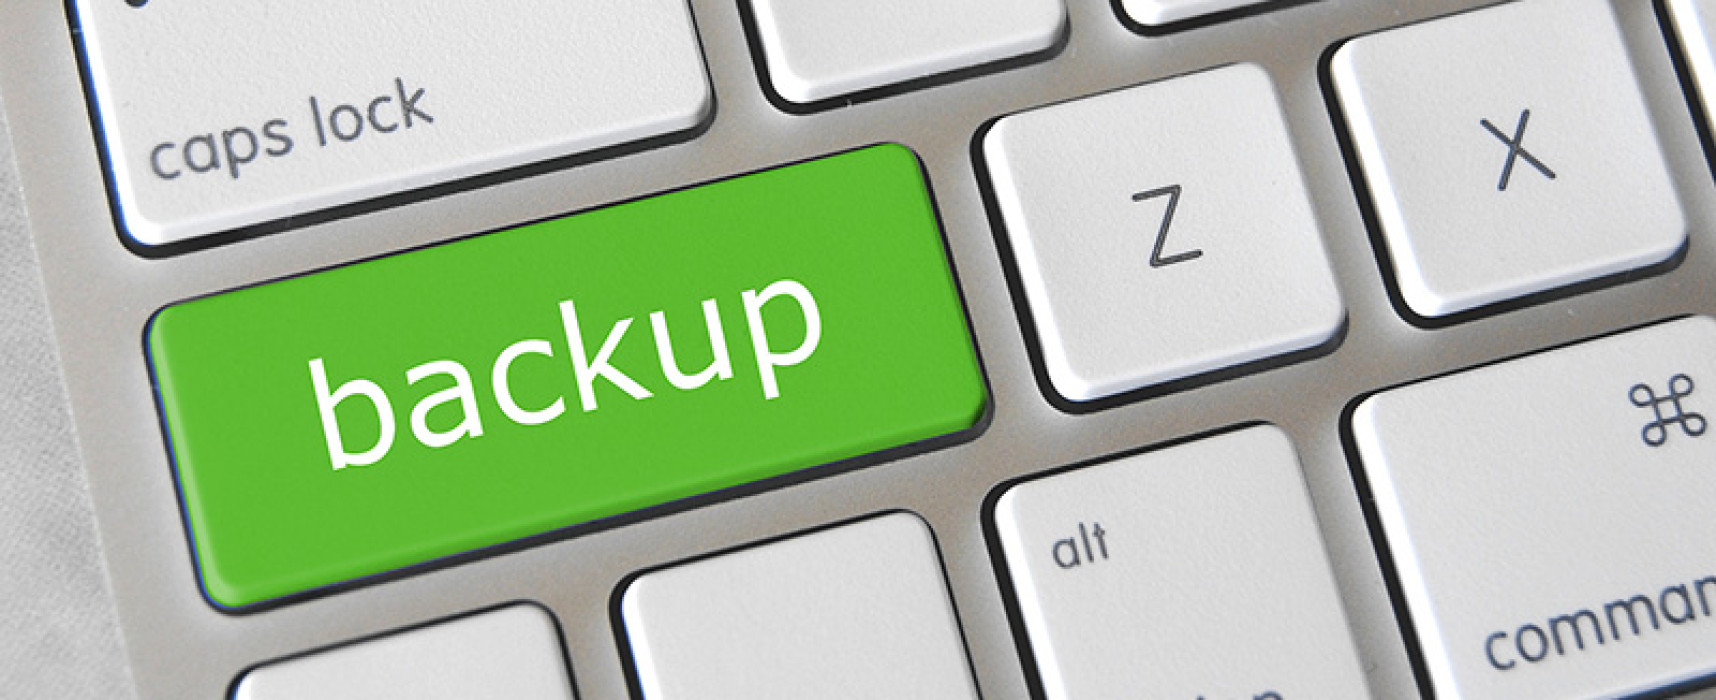 How to backup your stuff on windows 10